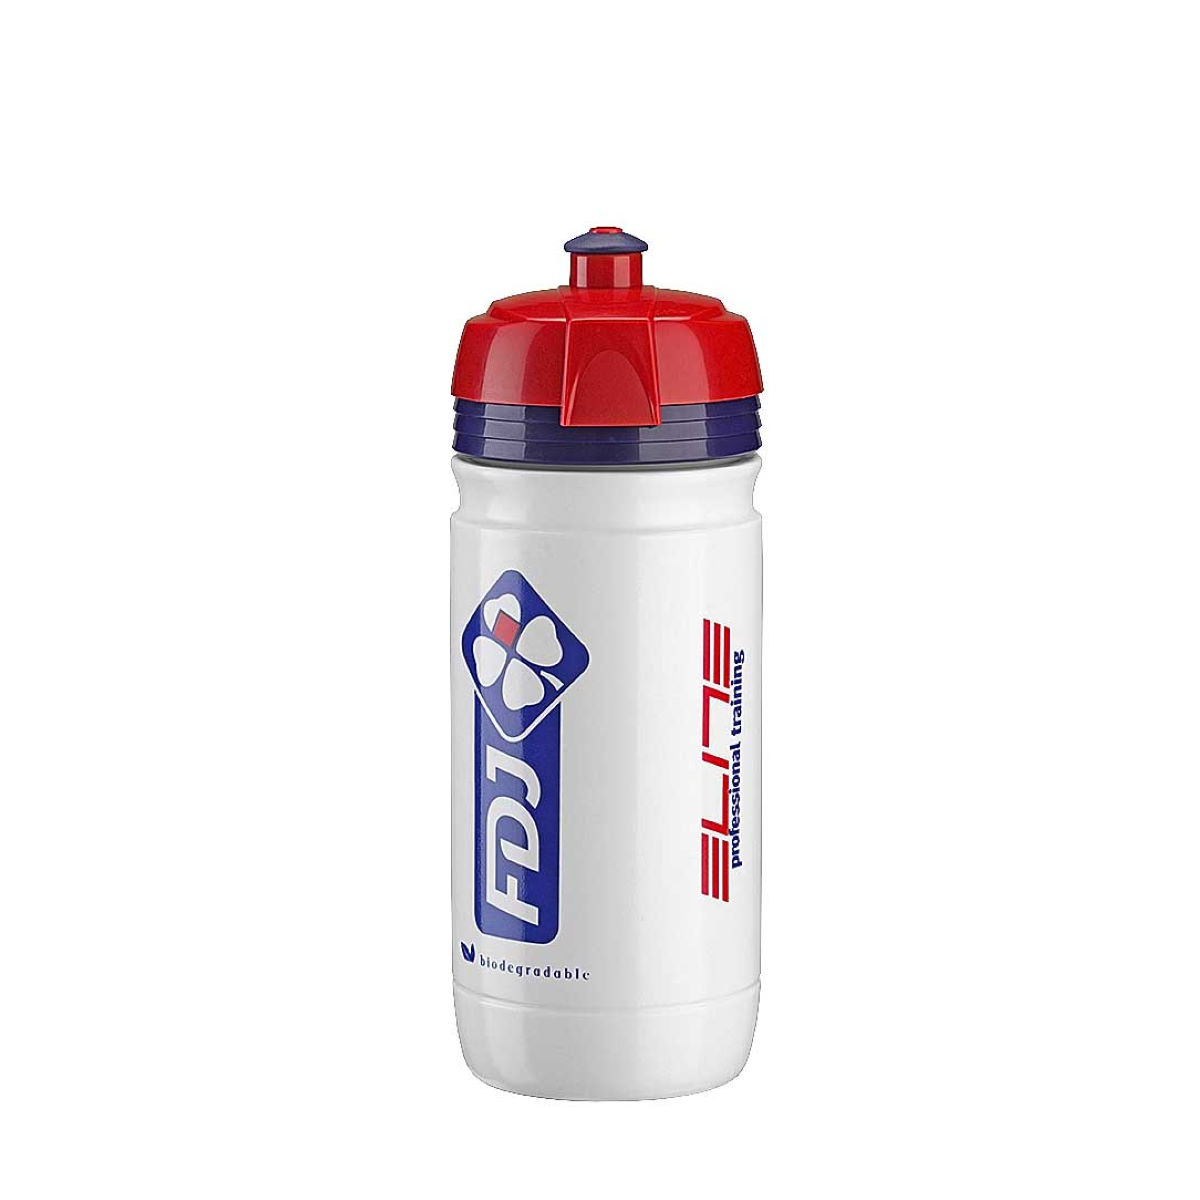 Bidon Elite Corsa Team (550 ml, 2014) - 550ml FDJ Bidons